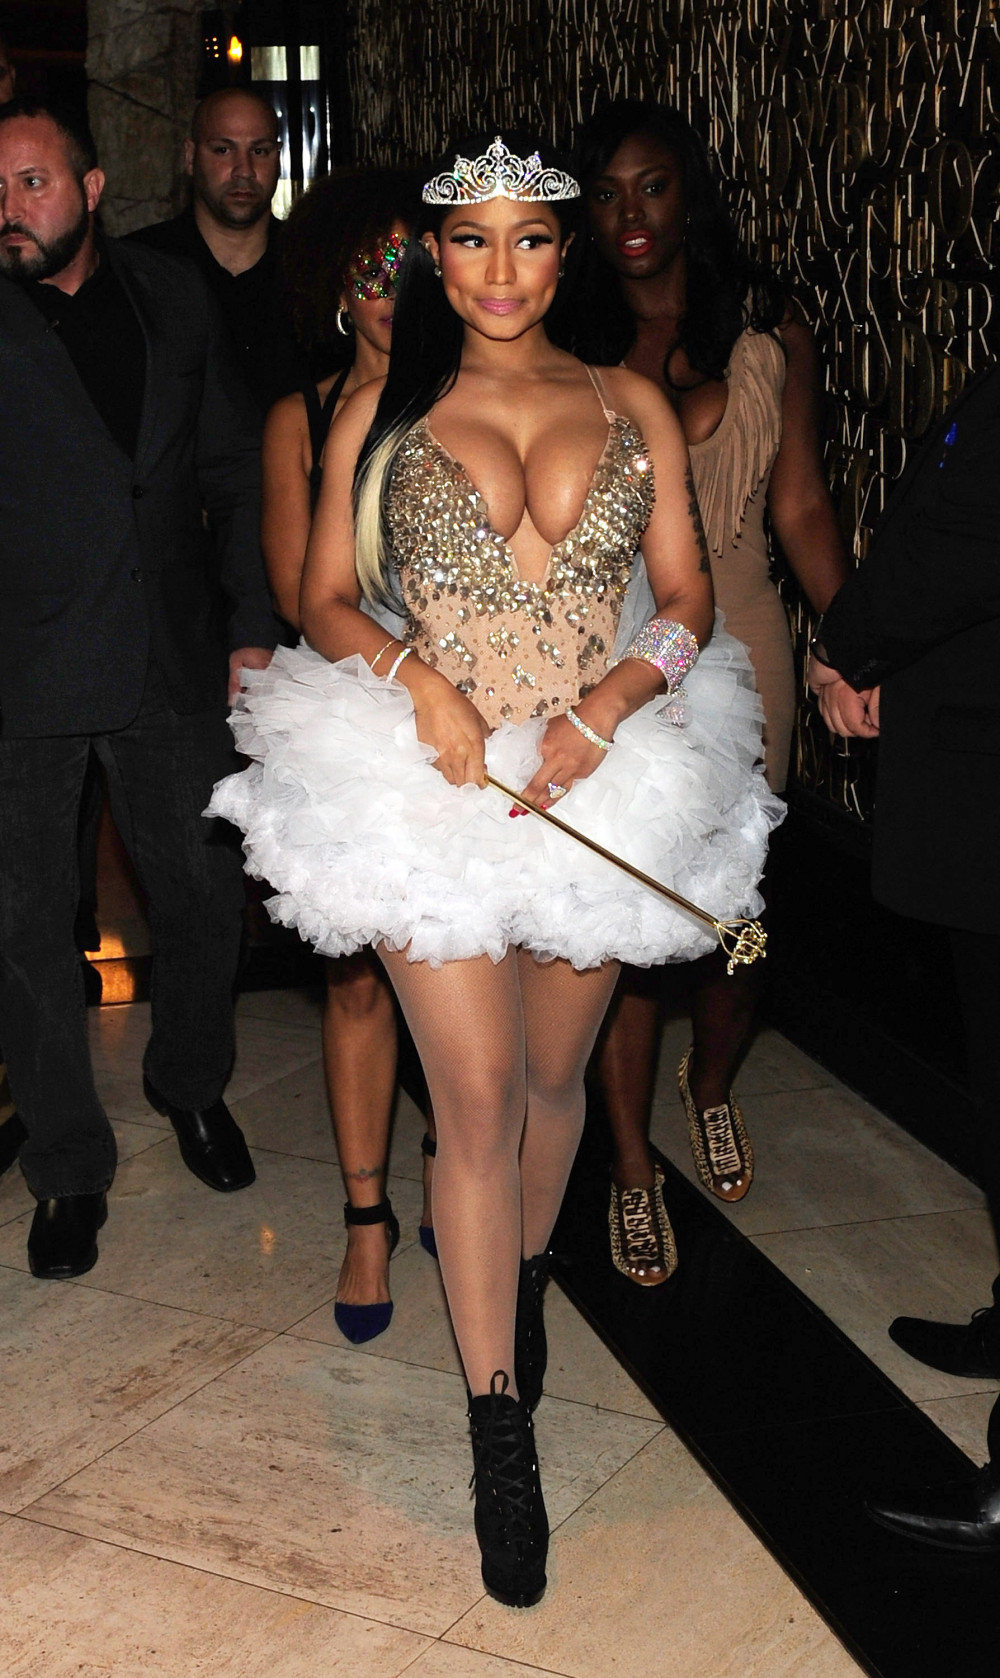 las vegas nv october 31 recording artist nicki minaj attends a haunted funhouse - Las Vegas Halloween Costume